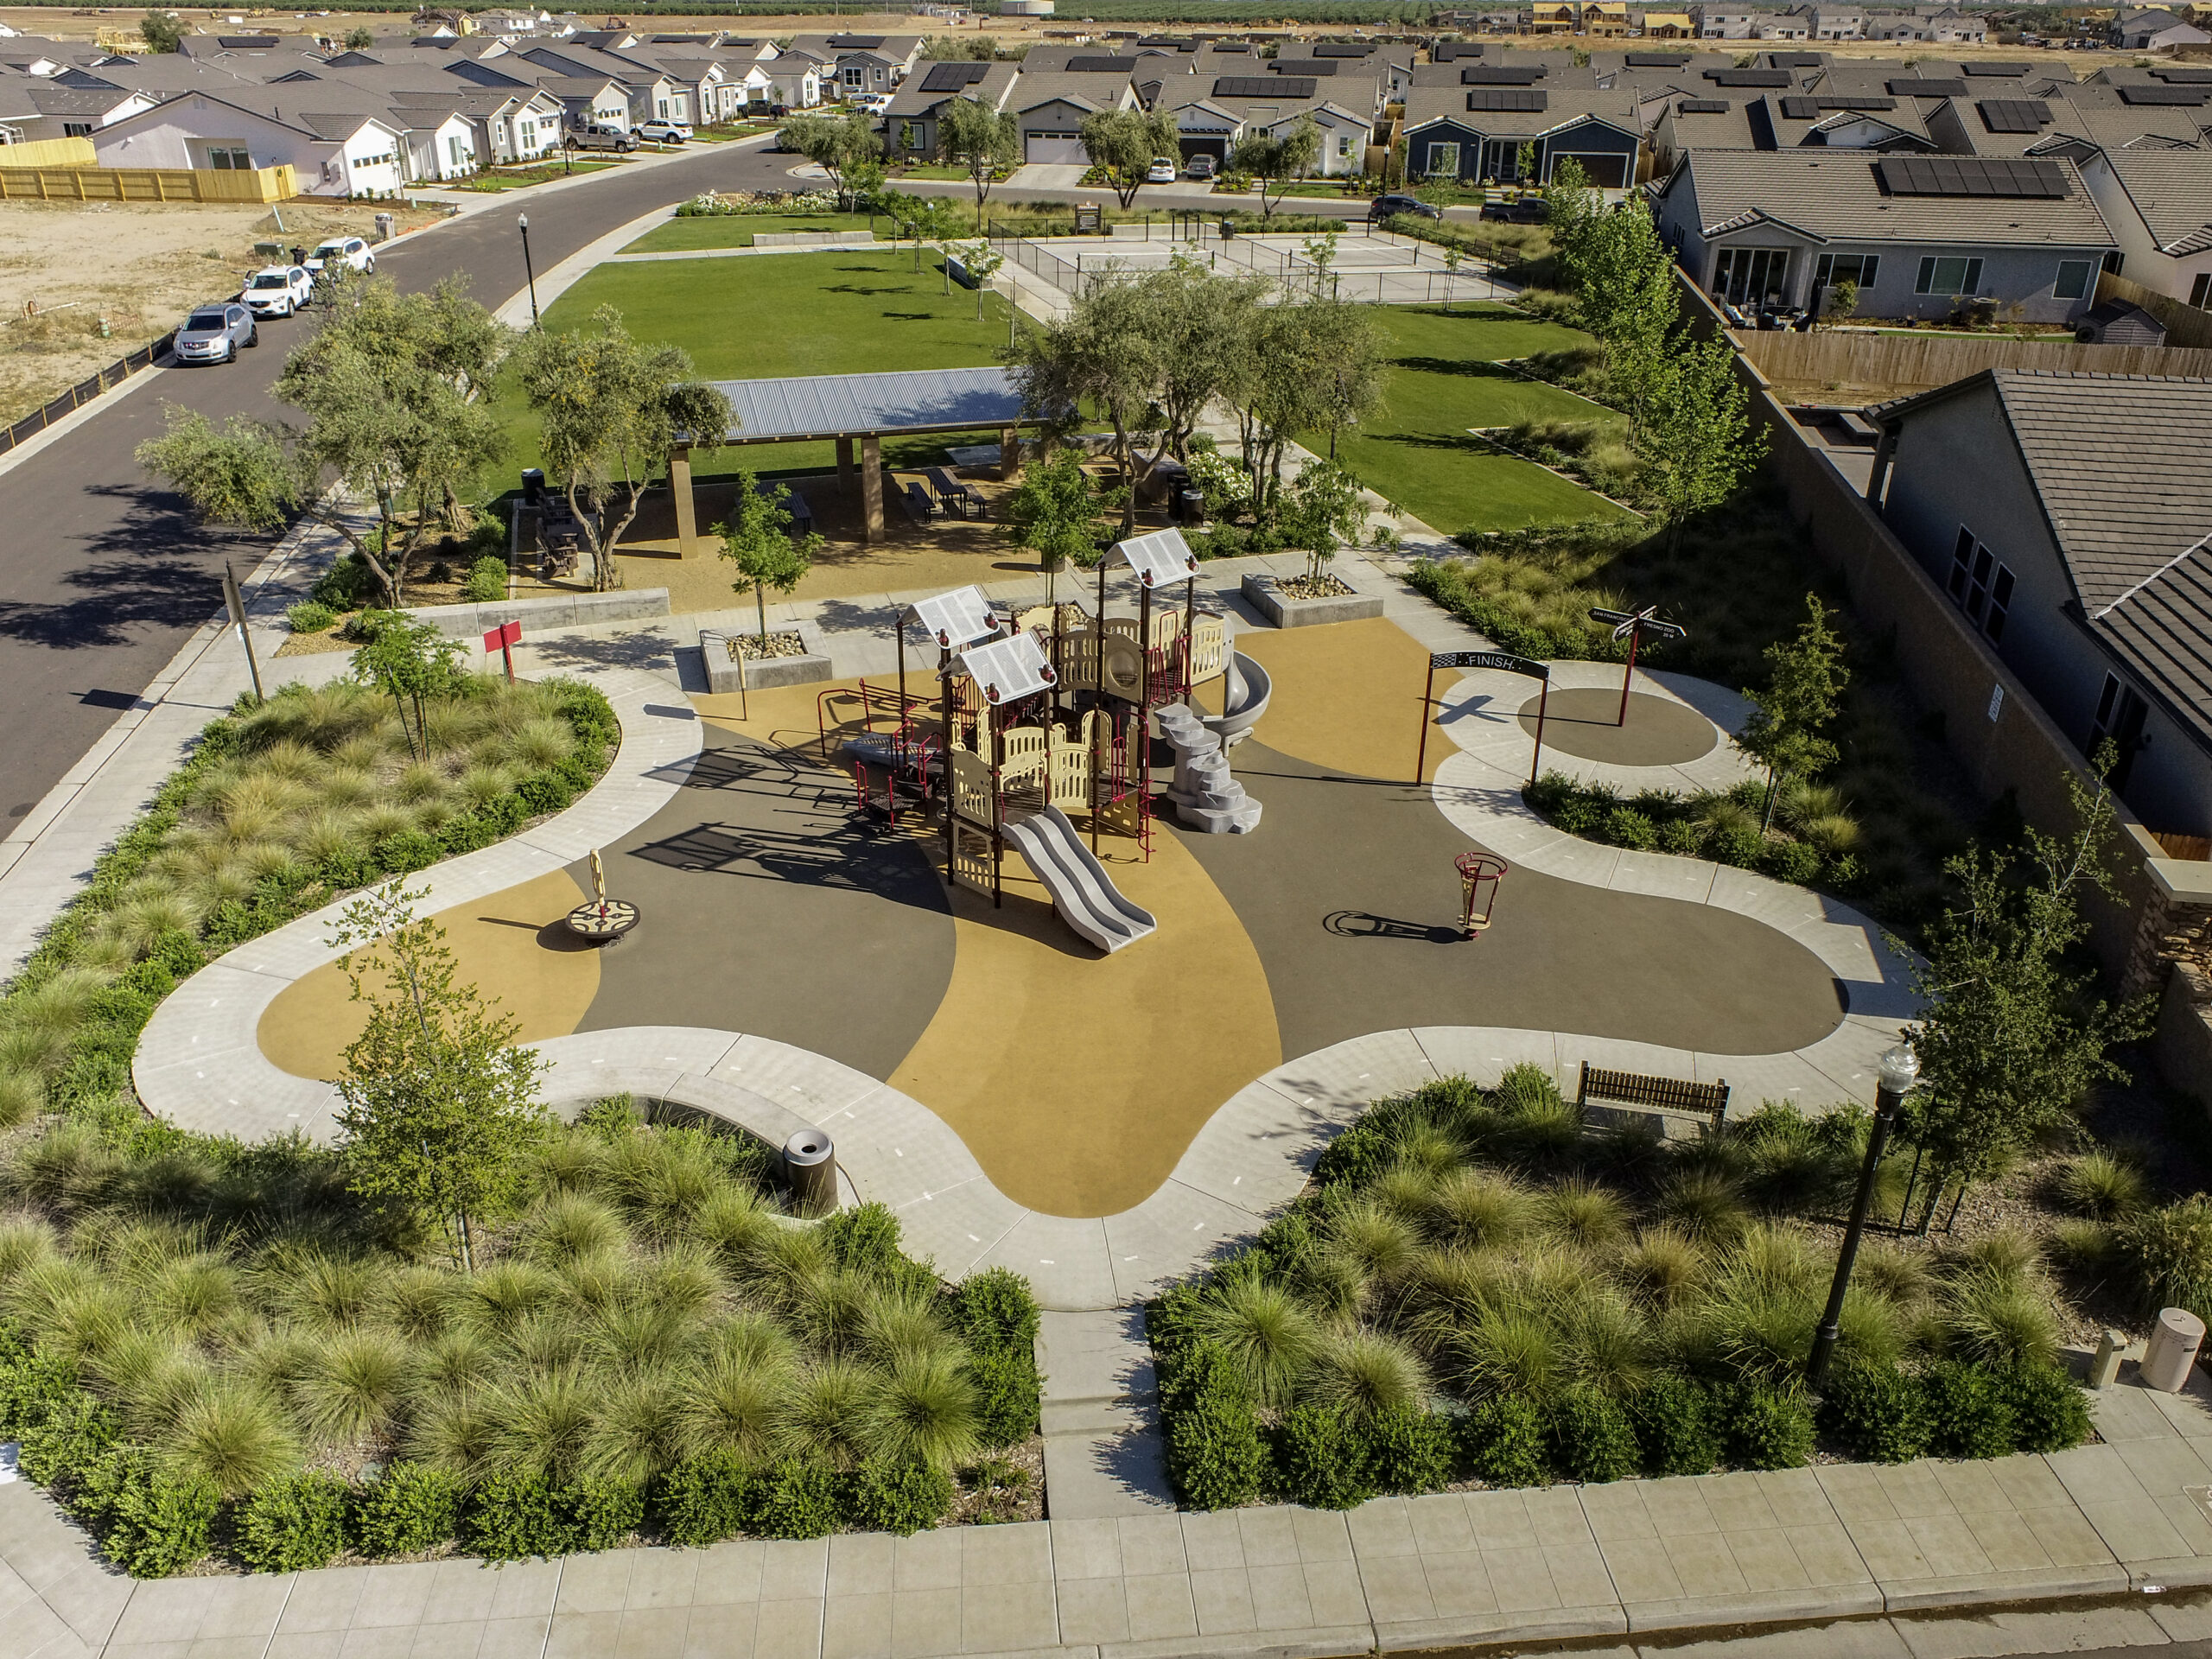 Aerial view of new park and landscaping